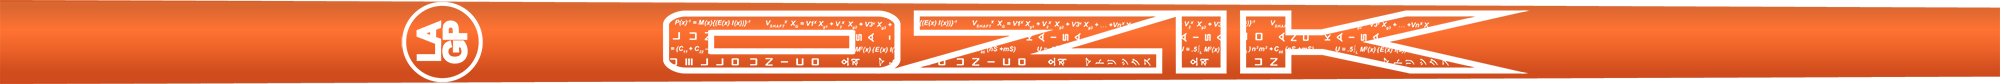 Ozik White Tie: Neon Orange White Satin - Wood 50 R